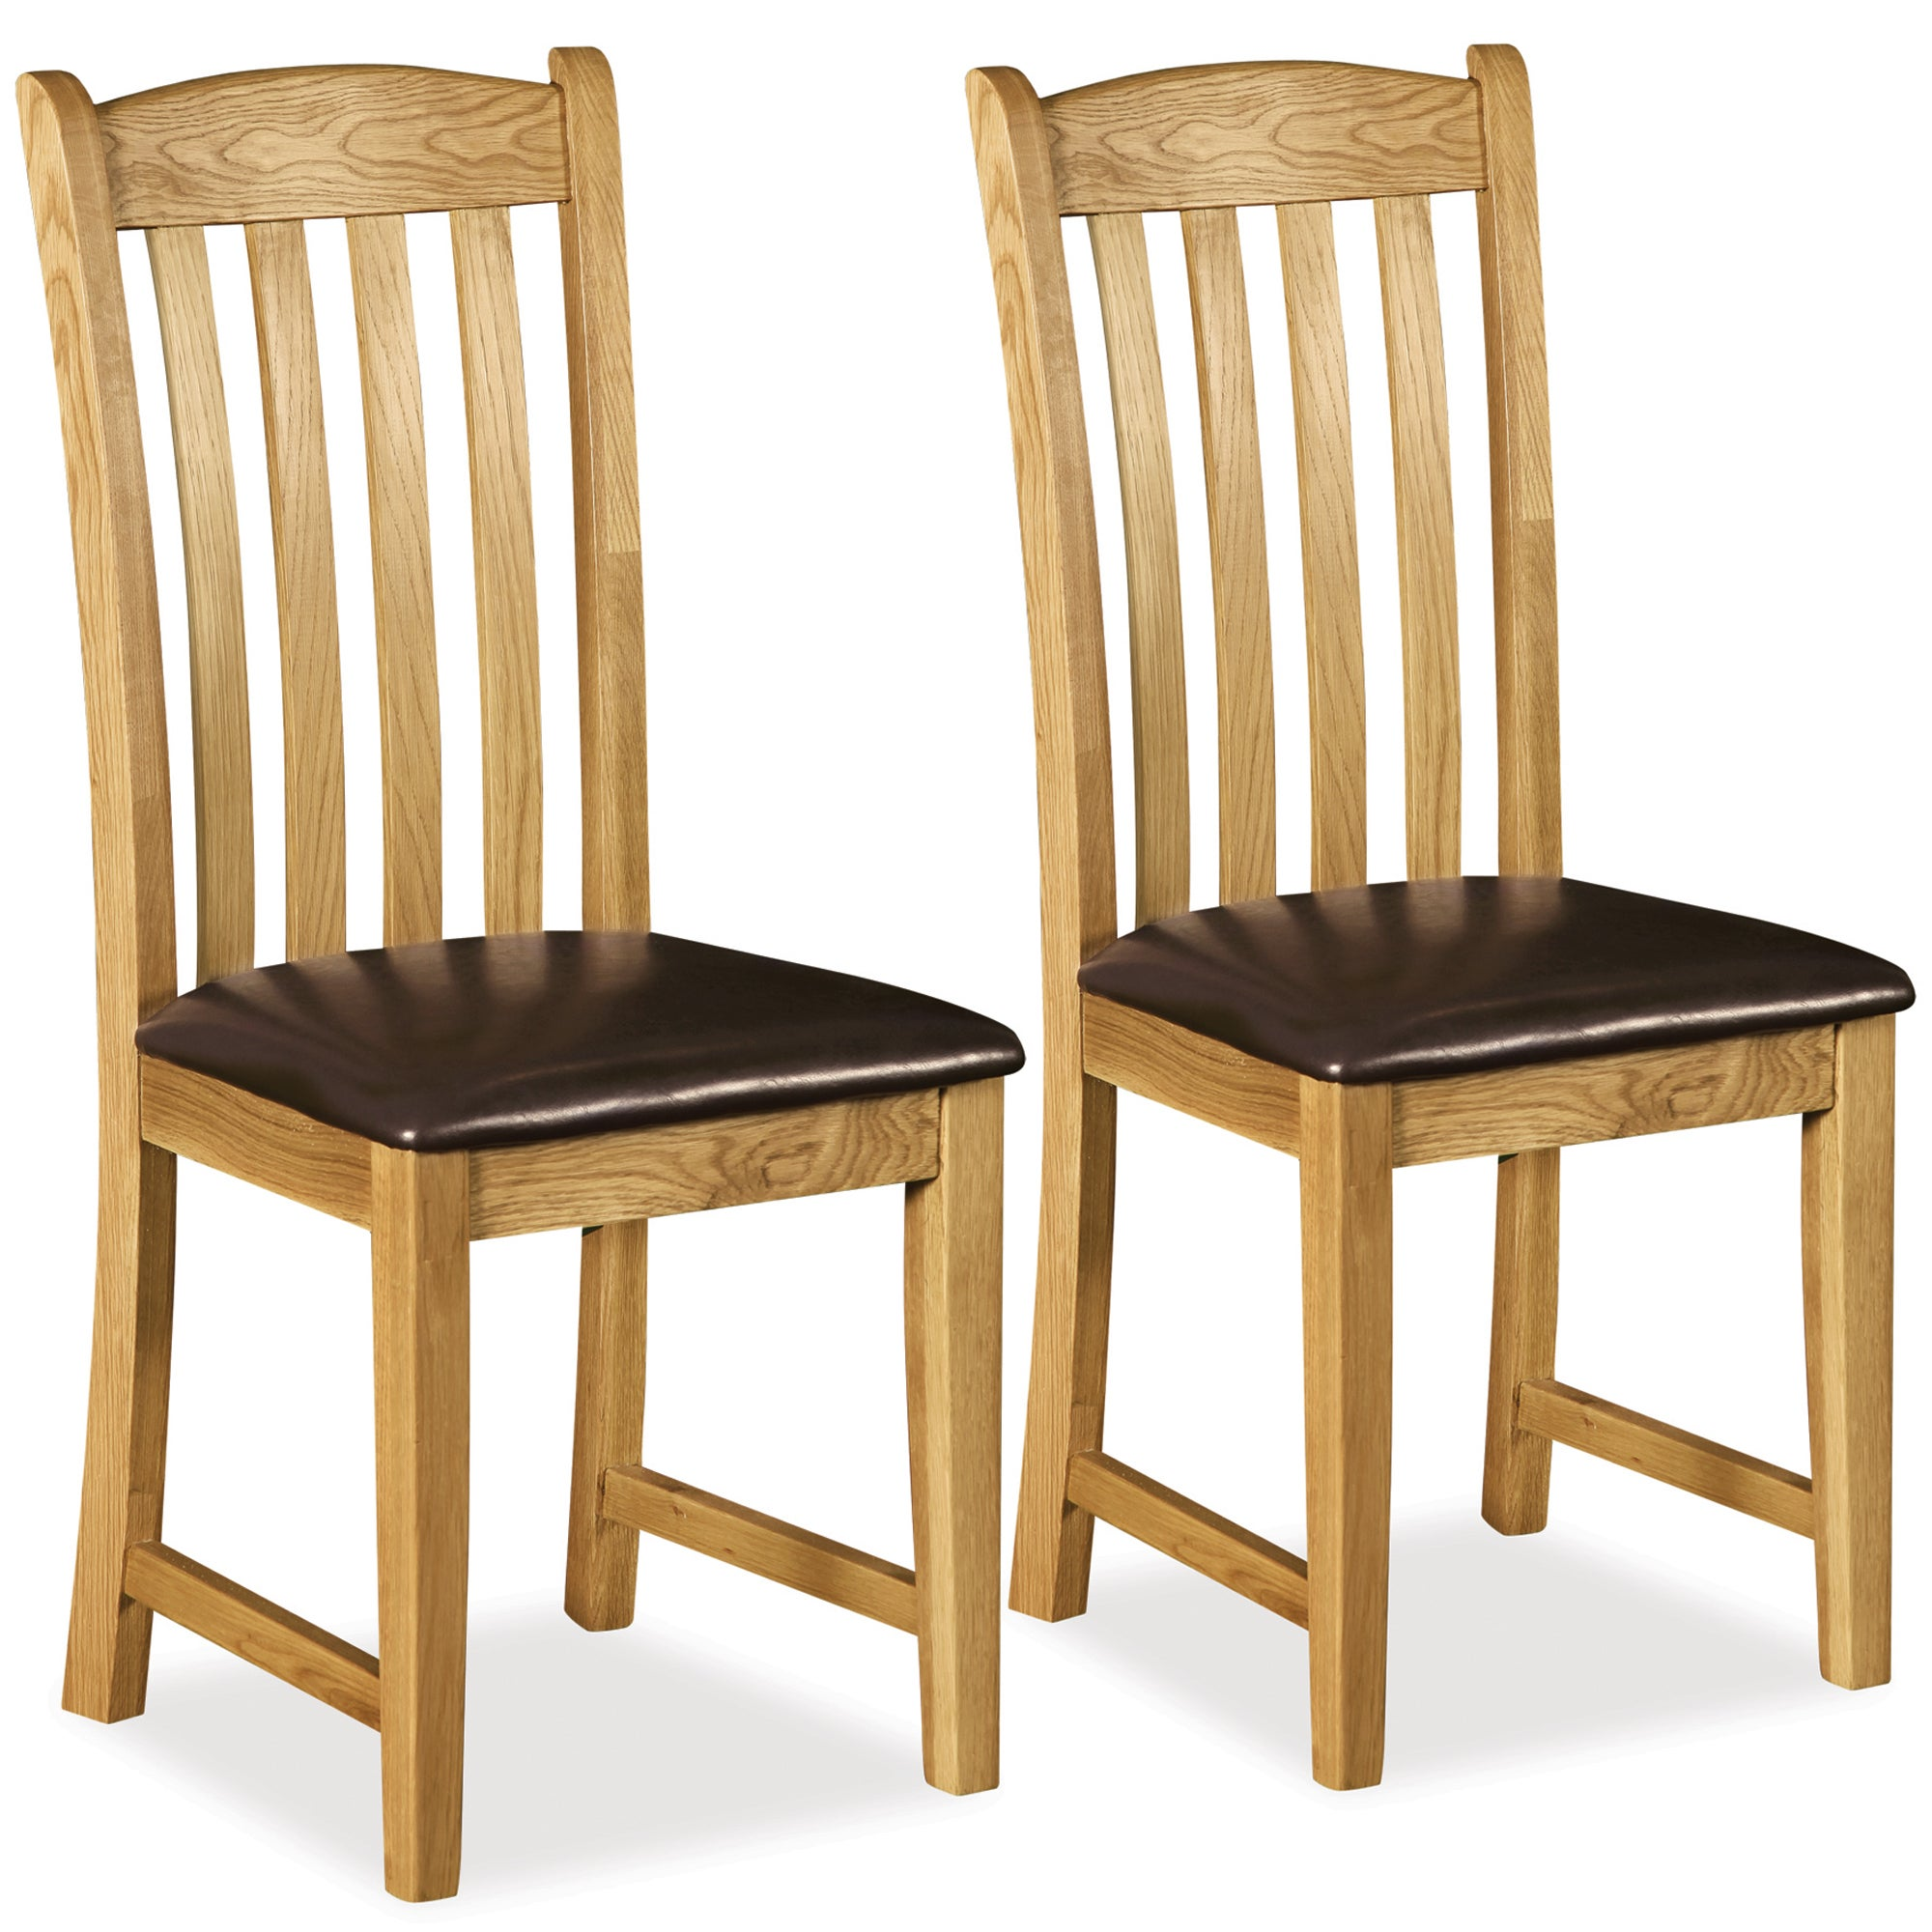 Chichester Pair of Oak Padded Seat Dining Chairs